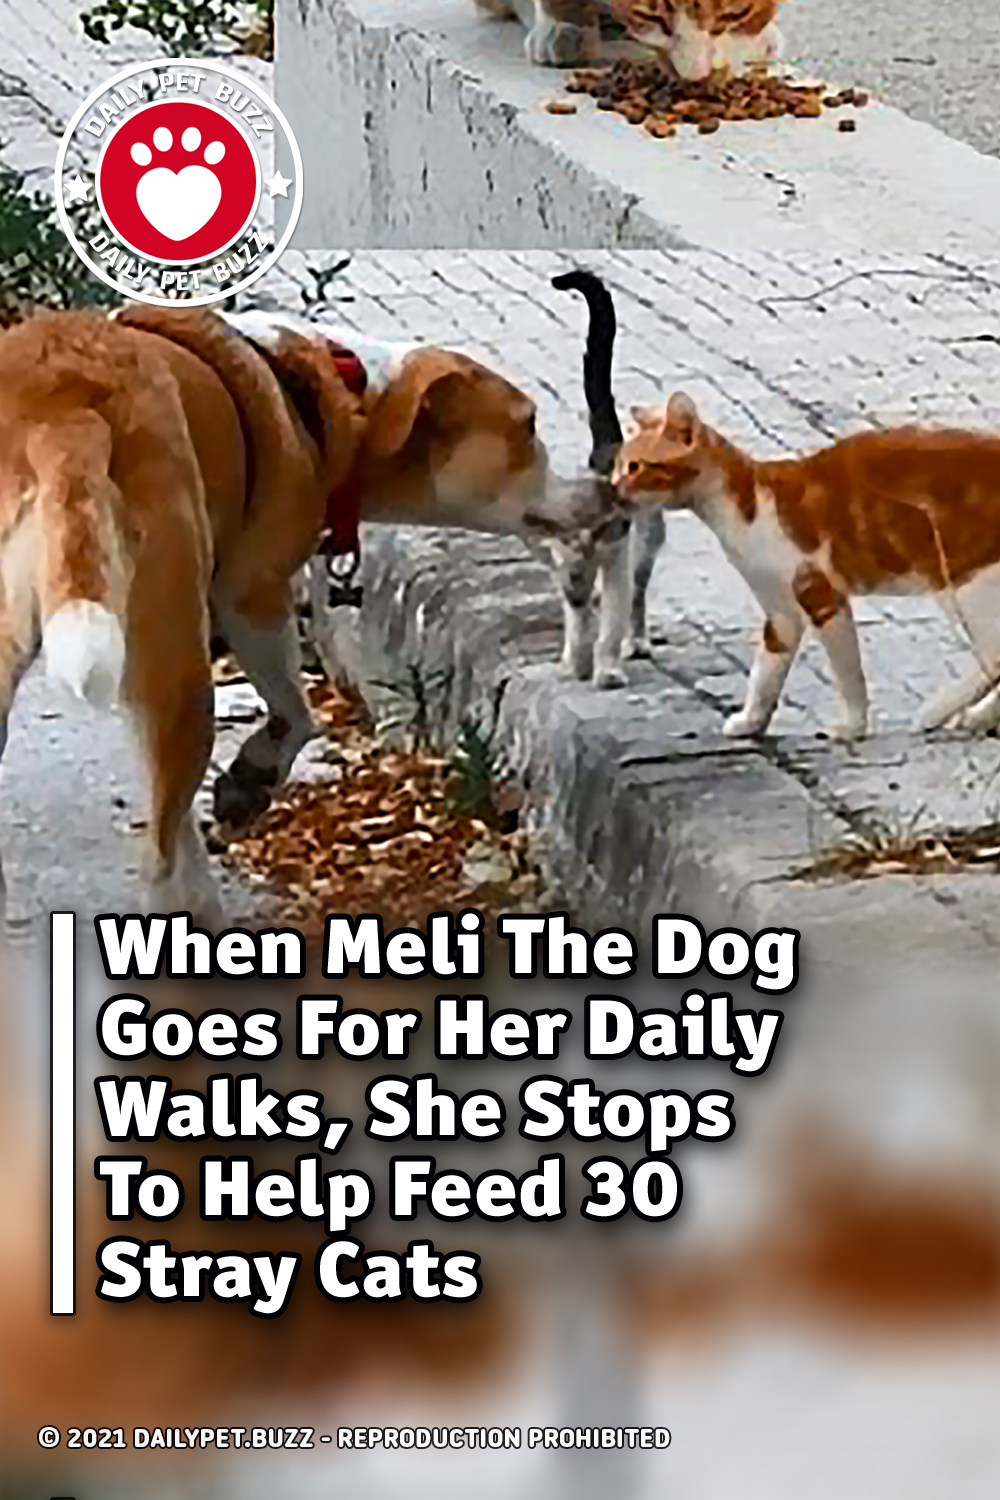 When Meli The Dog Goes For Her Daily Walks, She Stops To Help Feed 30 Stray Cats